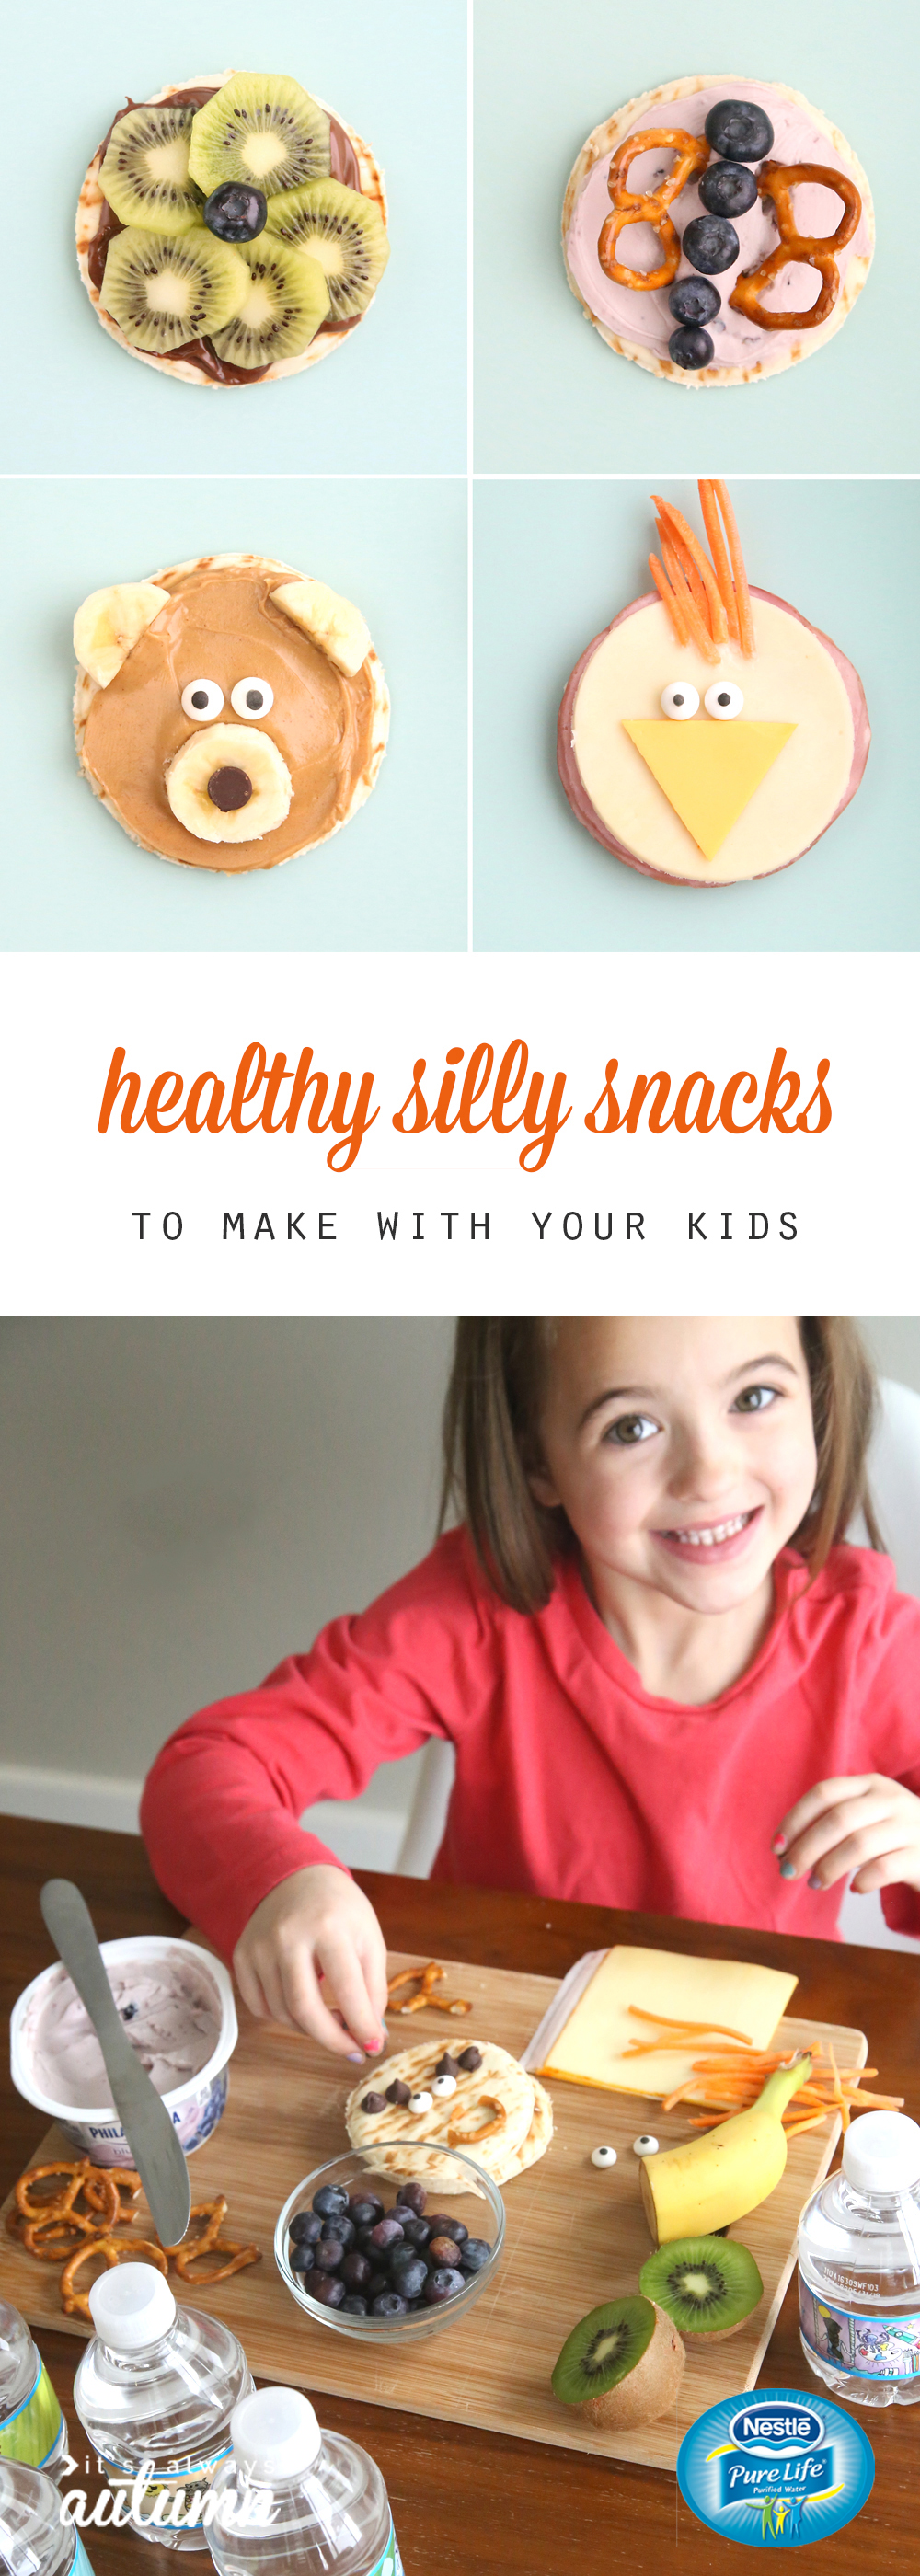 healthy snack ideas for kids that are decorated to look like animals